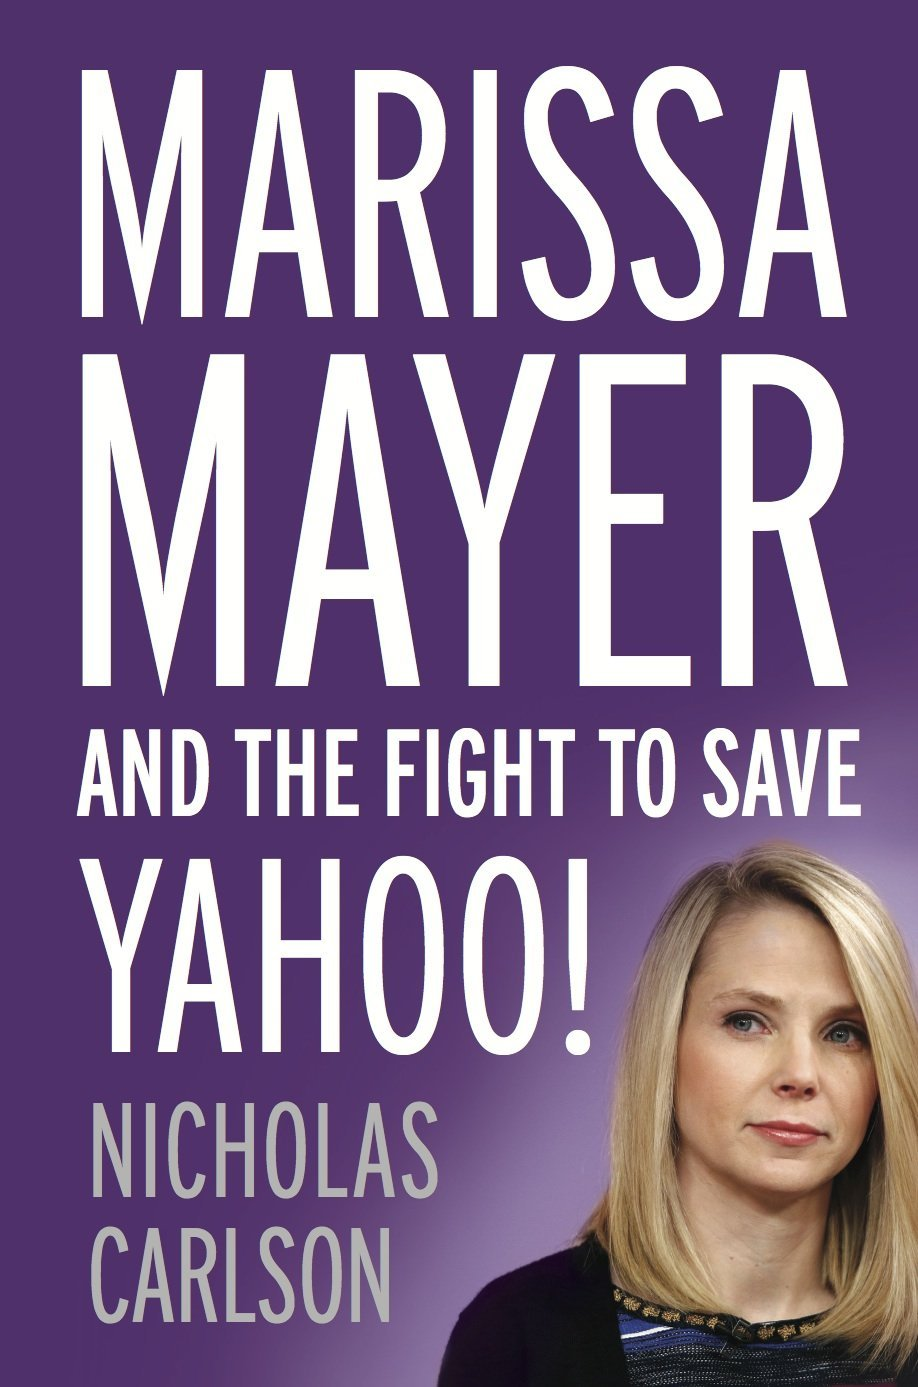 Marissa Mayer and her Fight to Save Yahoo!